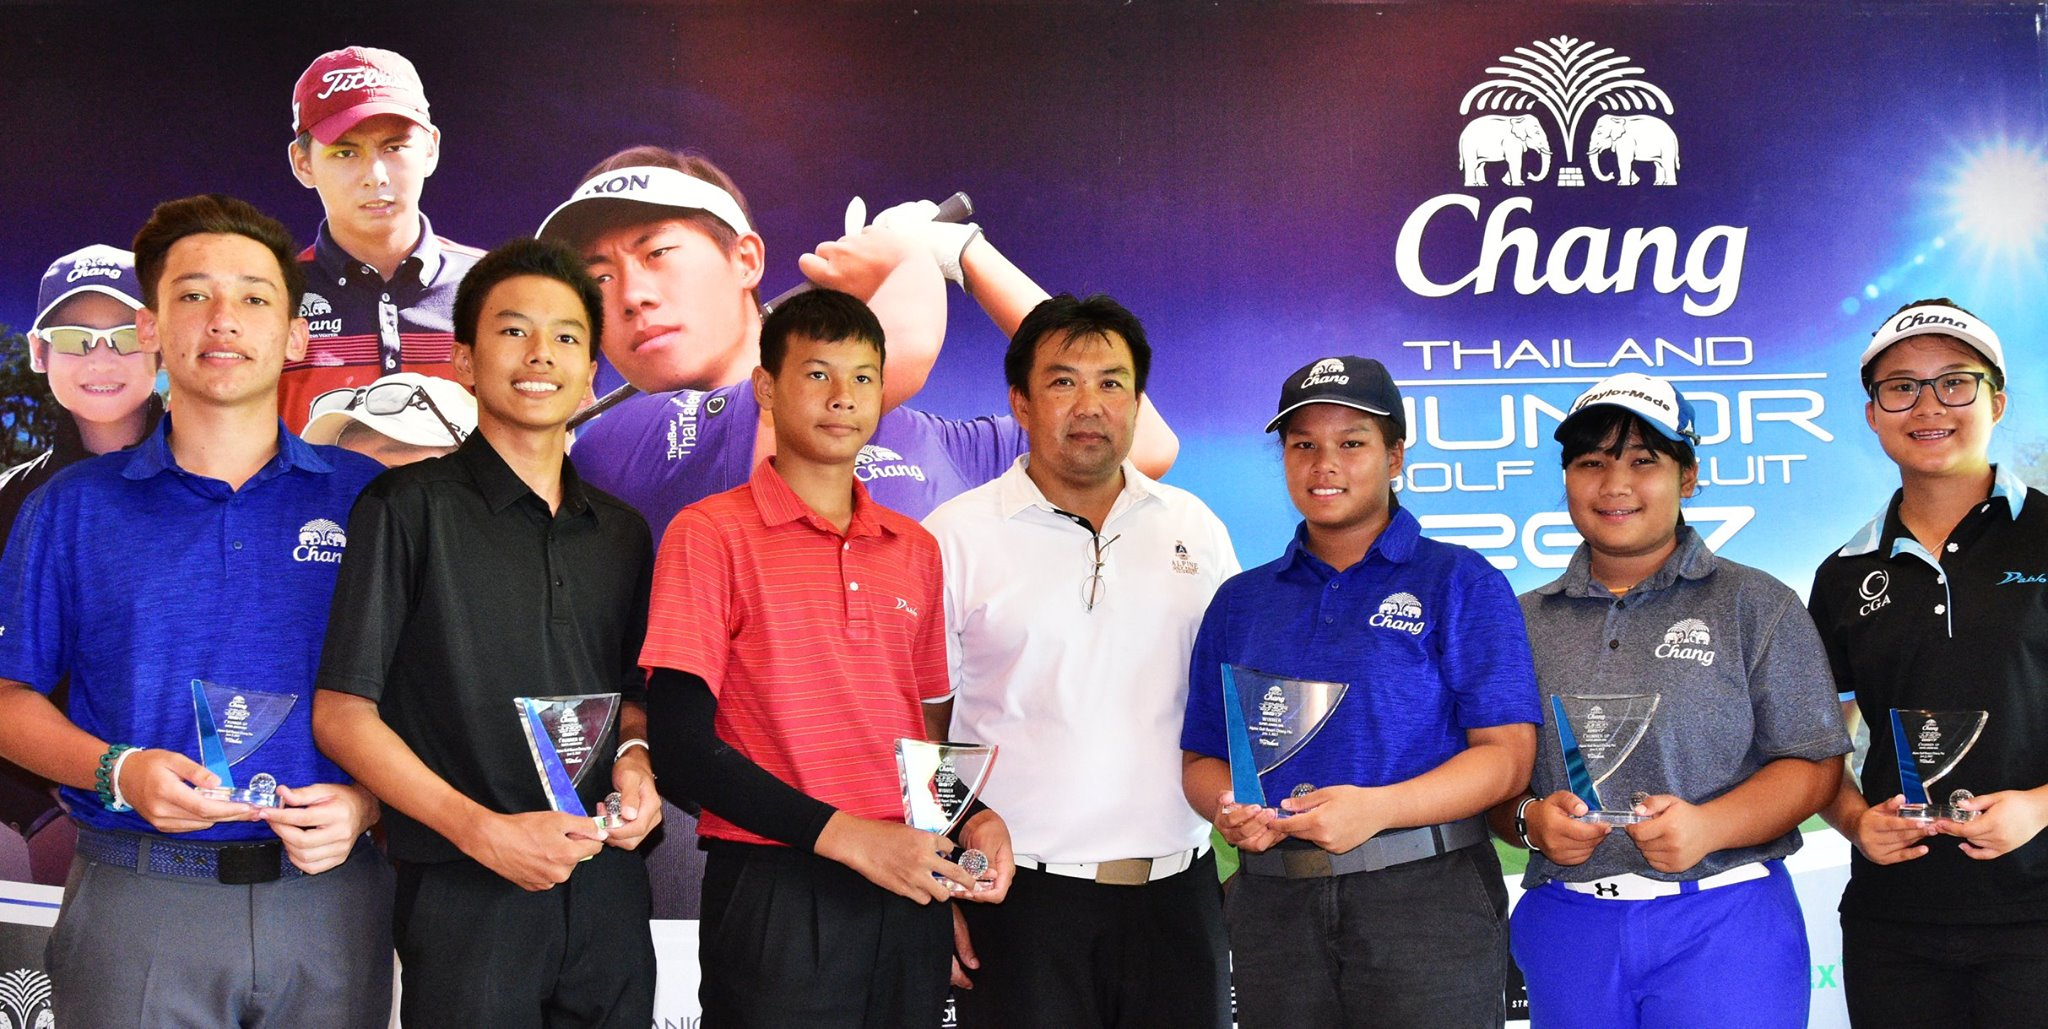 Chang Thailand Junior Golf Circuit 2017